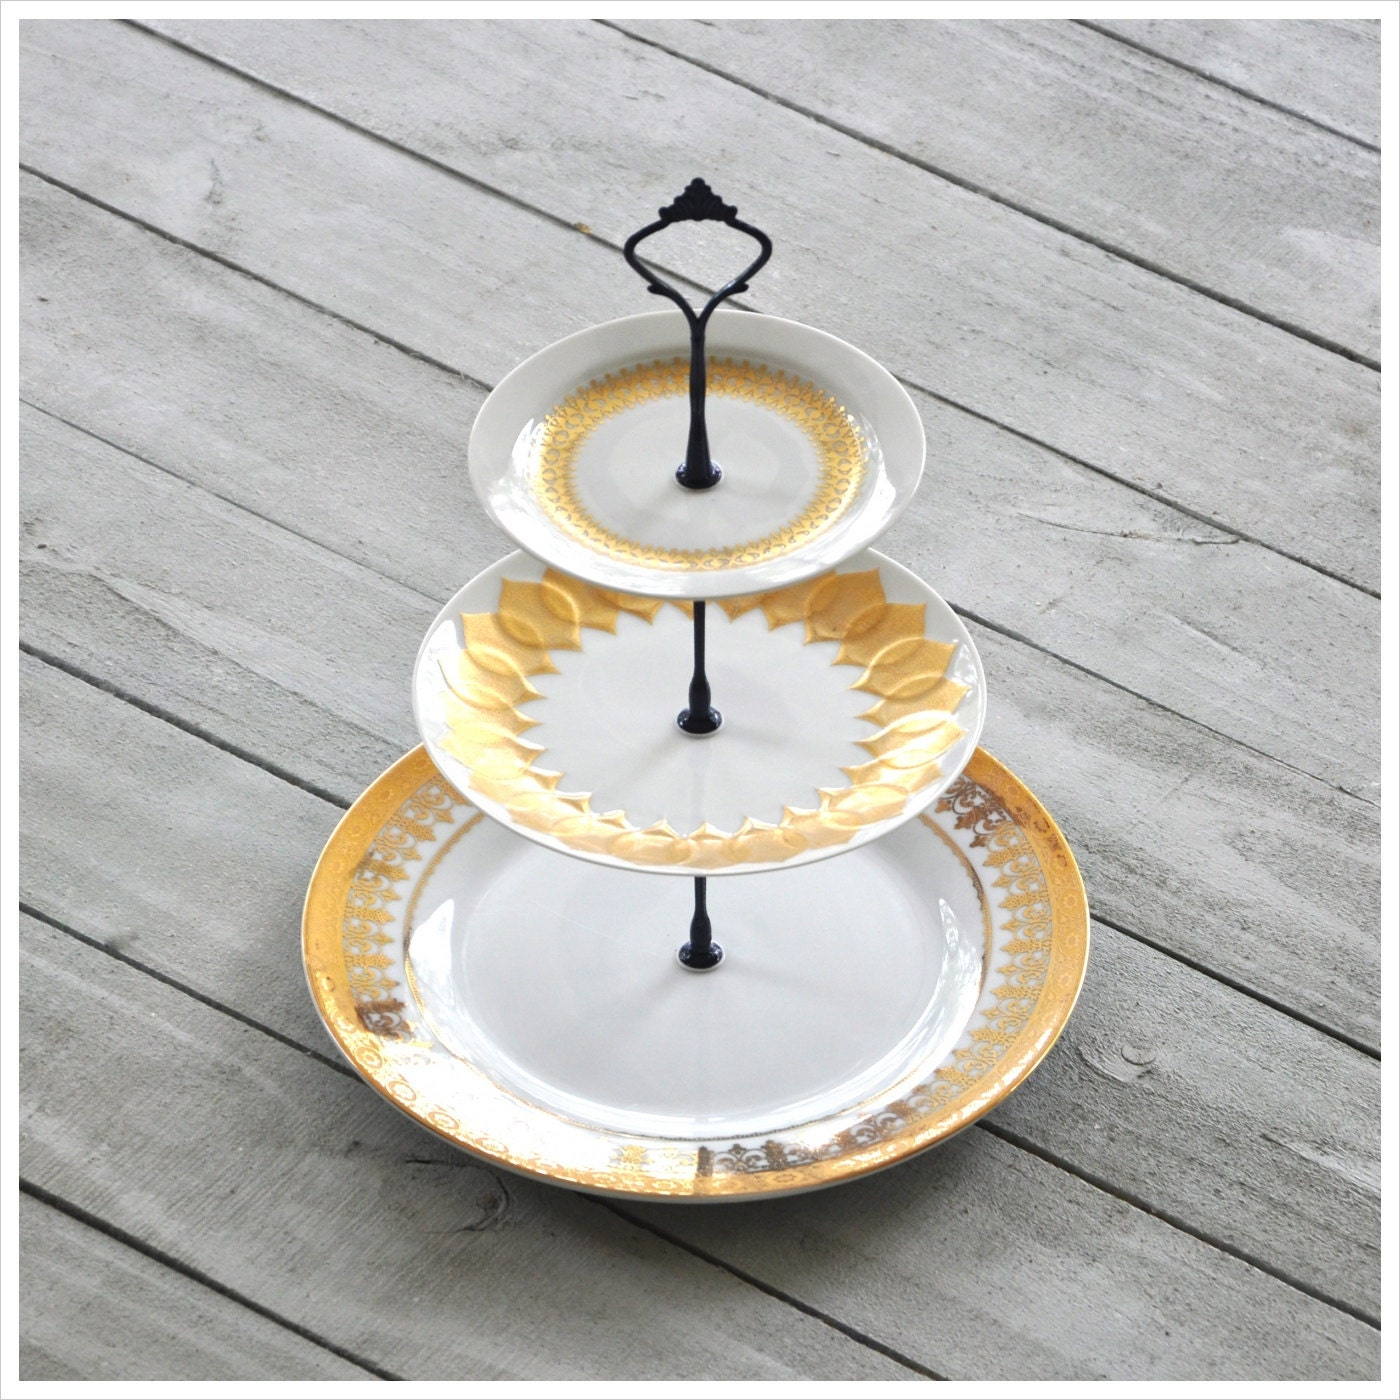 drenched 3 tier cake stand gold mid century china dishes. Black Bedroom Furniture Sets. Home Design Ideas